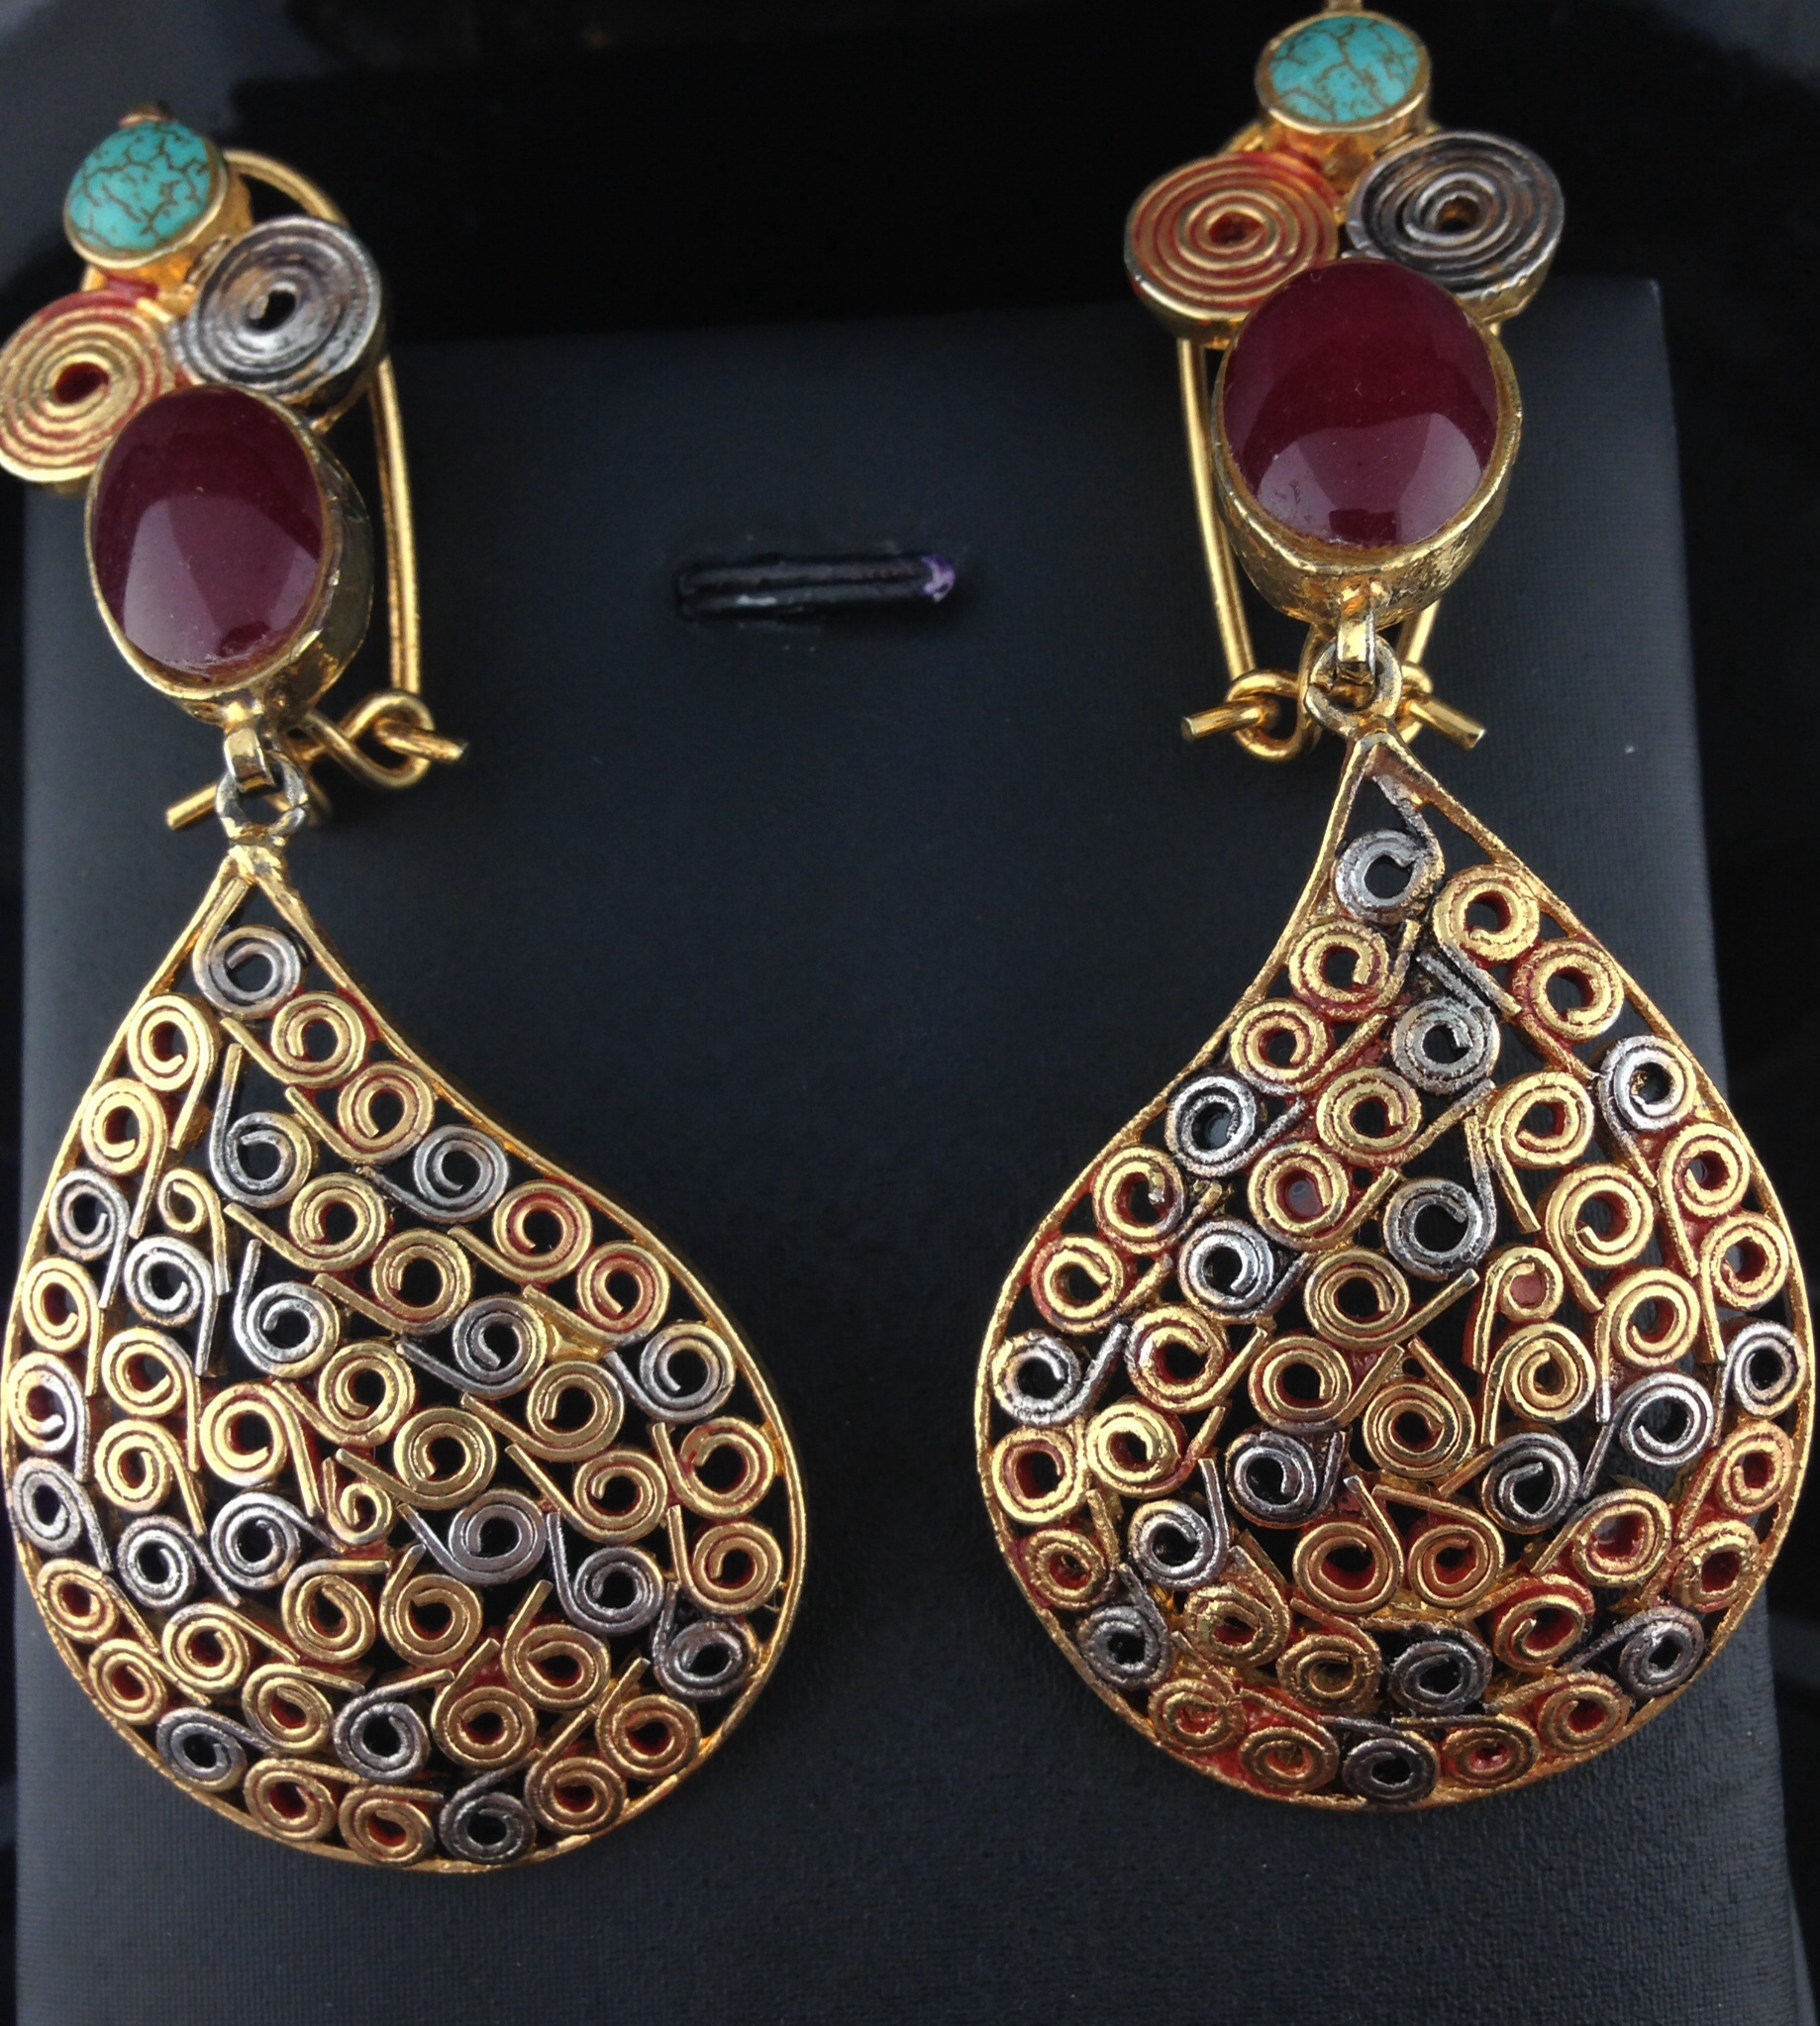 Kundan Earrings With Rubies and Turquoise Stones.